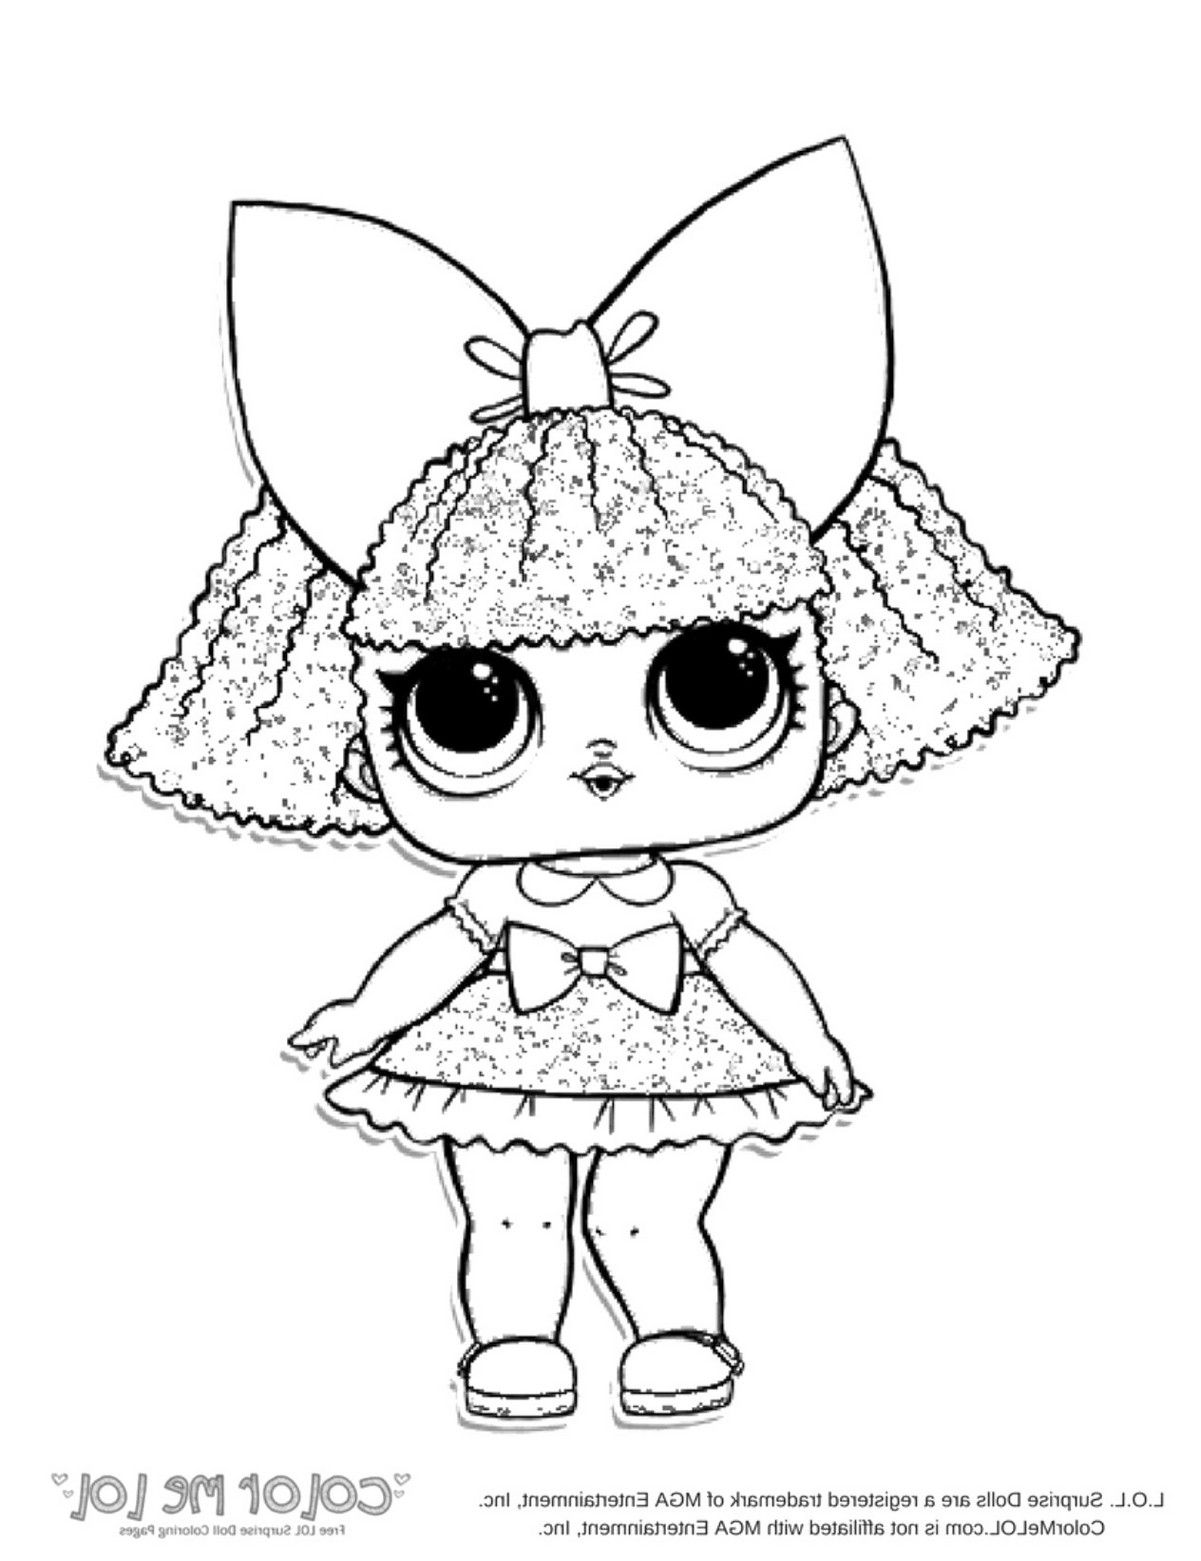 I Love You Baby Coloring Pages New Free Printable Lol Surprise Dolls Fresh Of Prin Doll Boyama Kitaplari Bebek Cizimi Lol